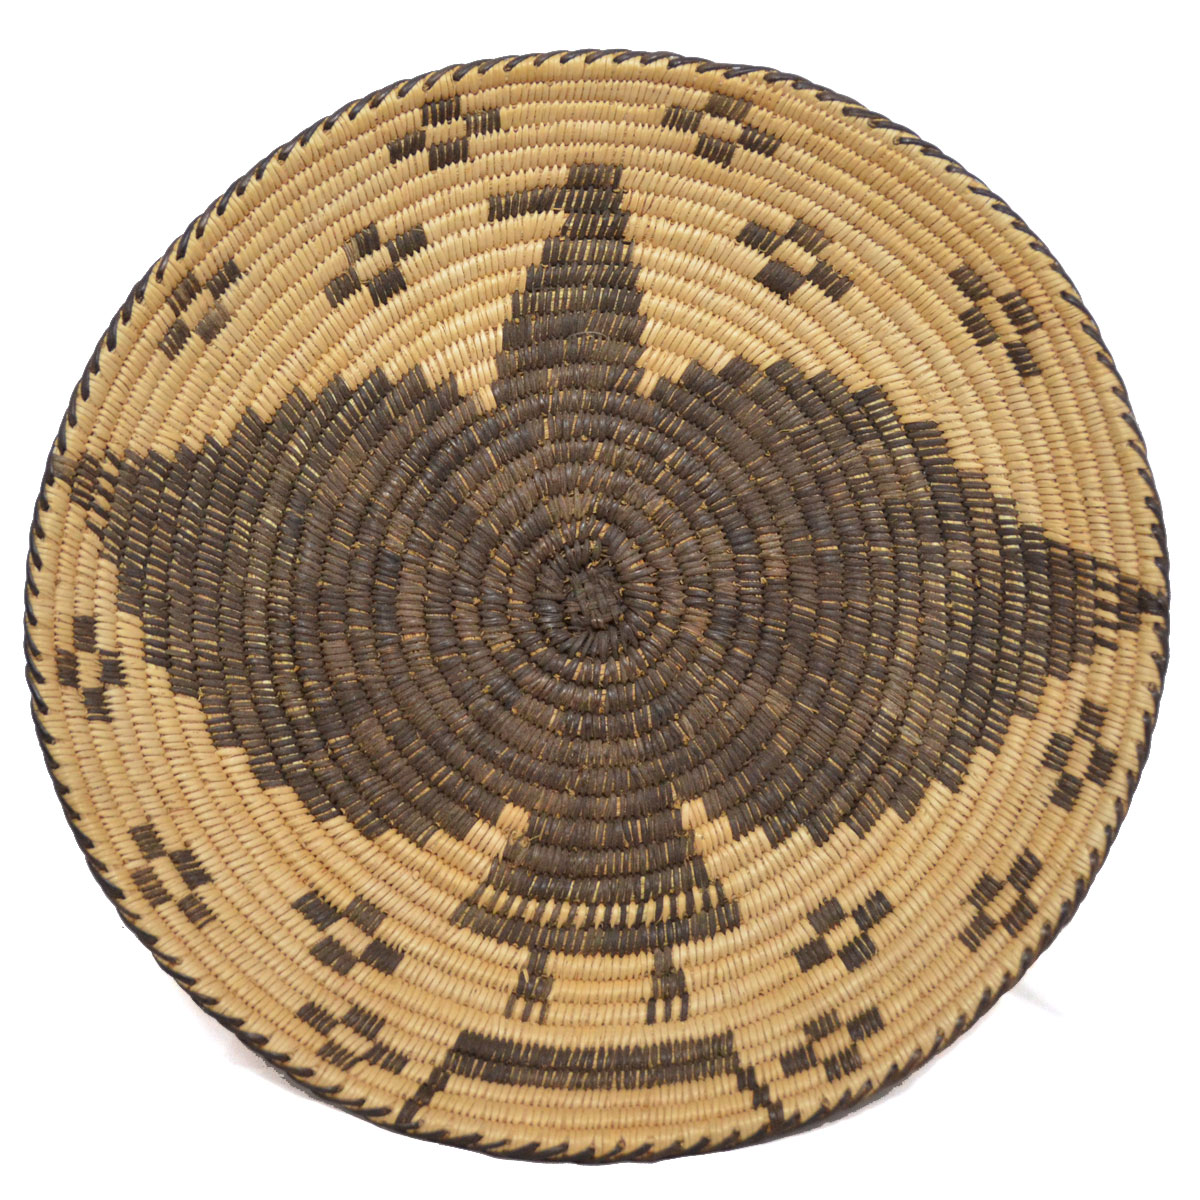 Native American Basketry by Unknown Artist